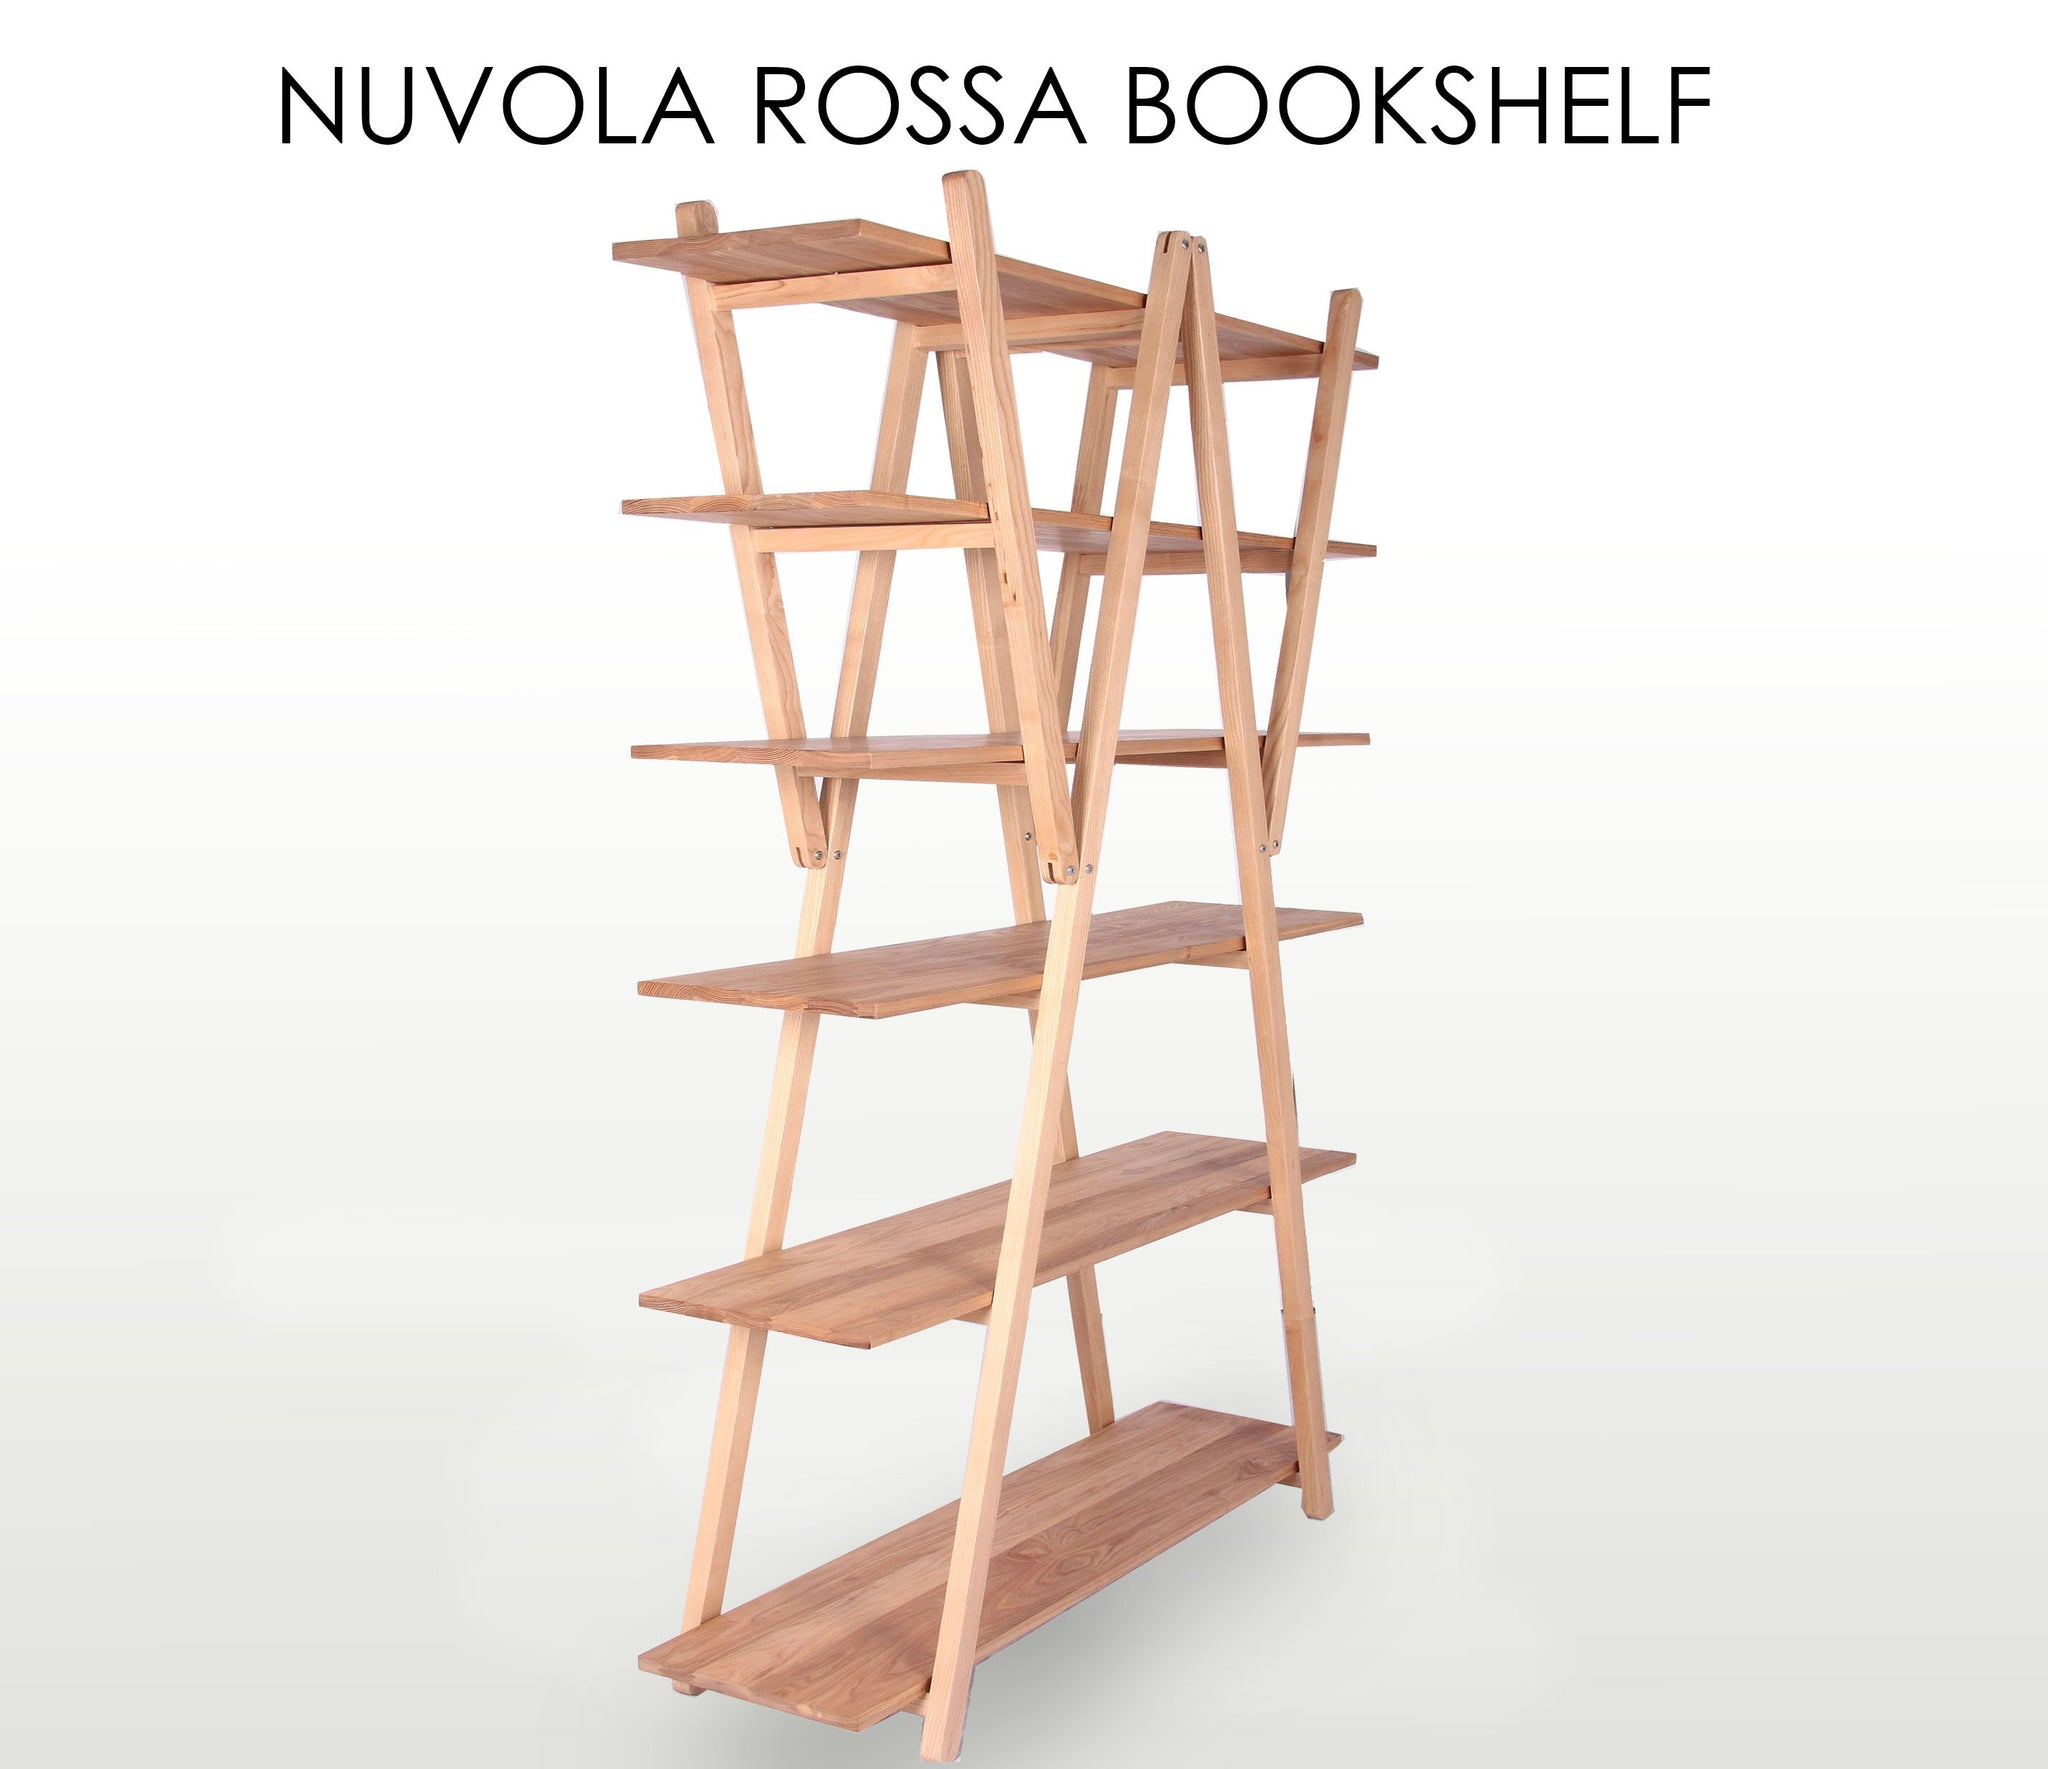 NUVOLA ROSSA BOOKSHELF - Repro Furniture